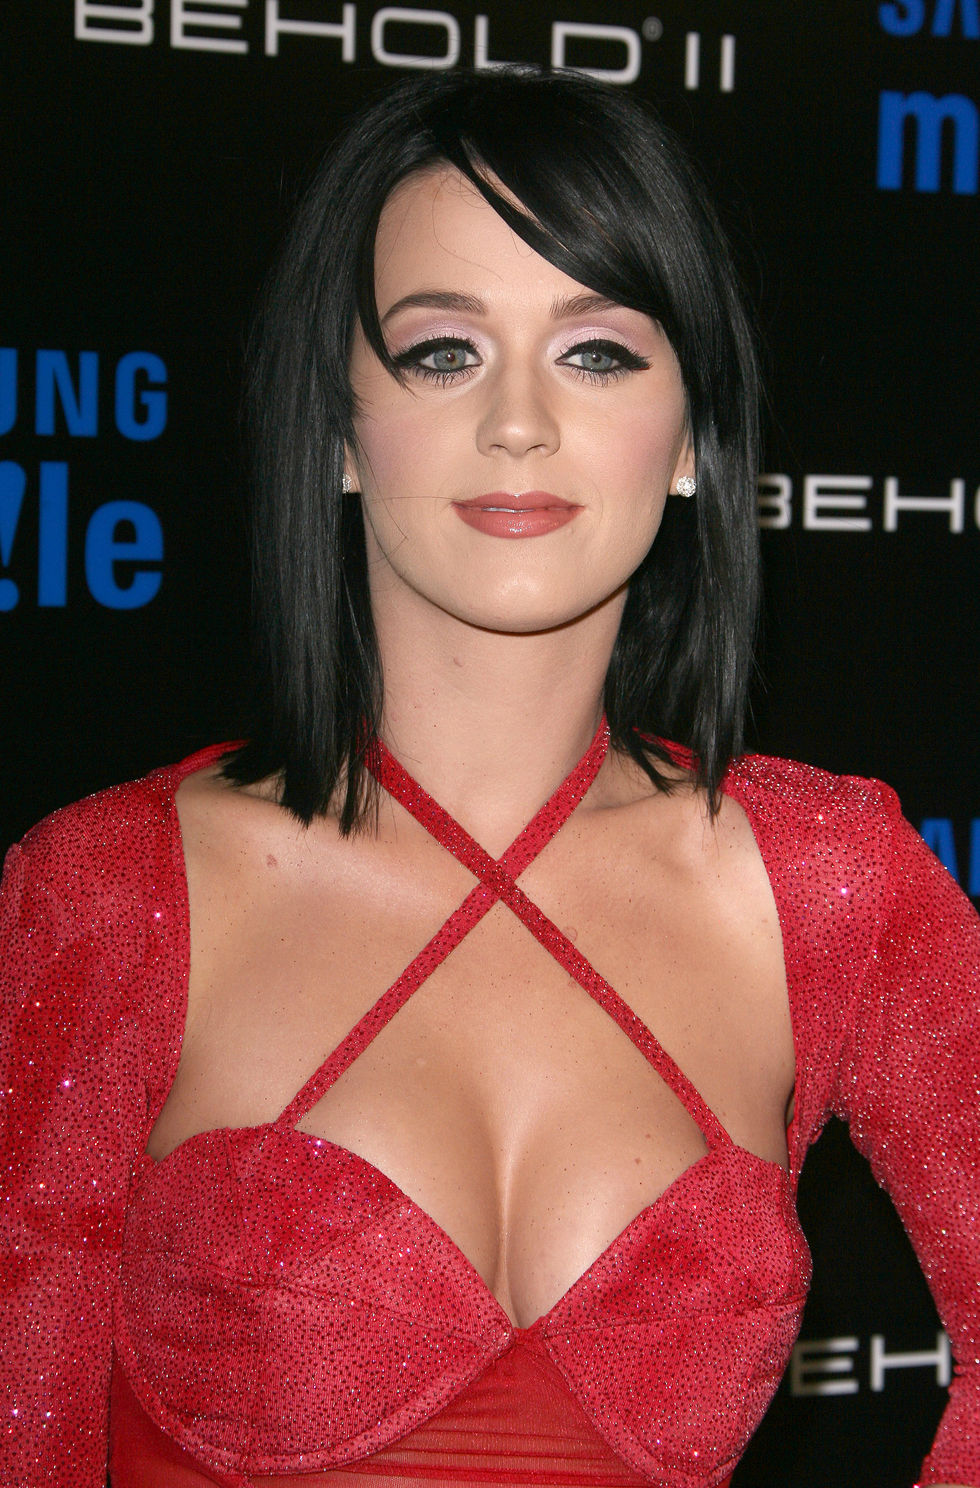 katy-perry-the-samsung-behold-ii-premiere-launch-event-01